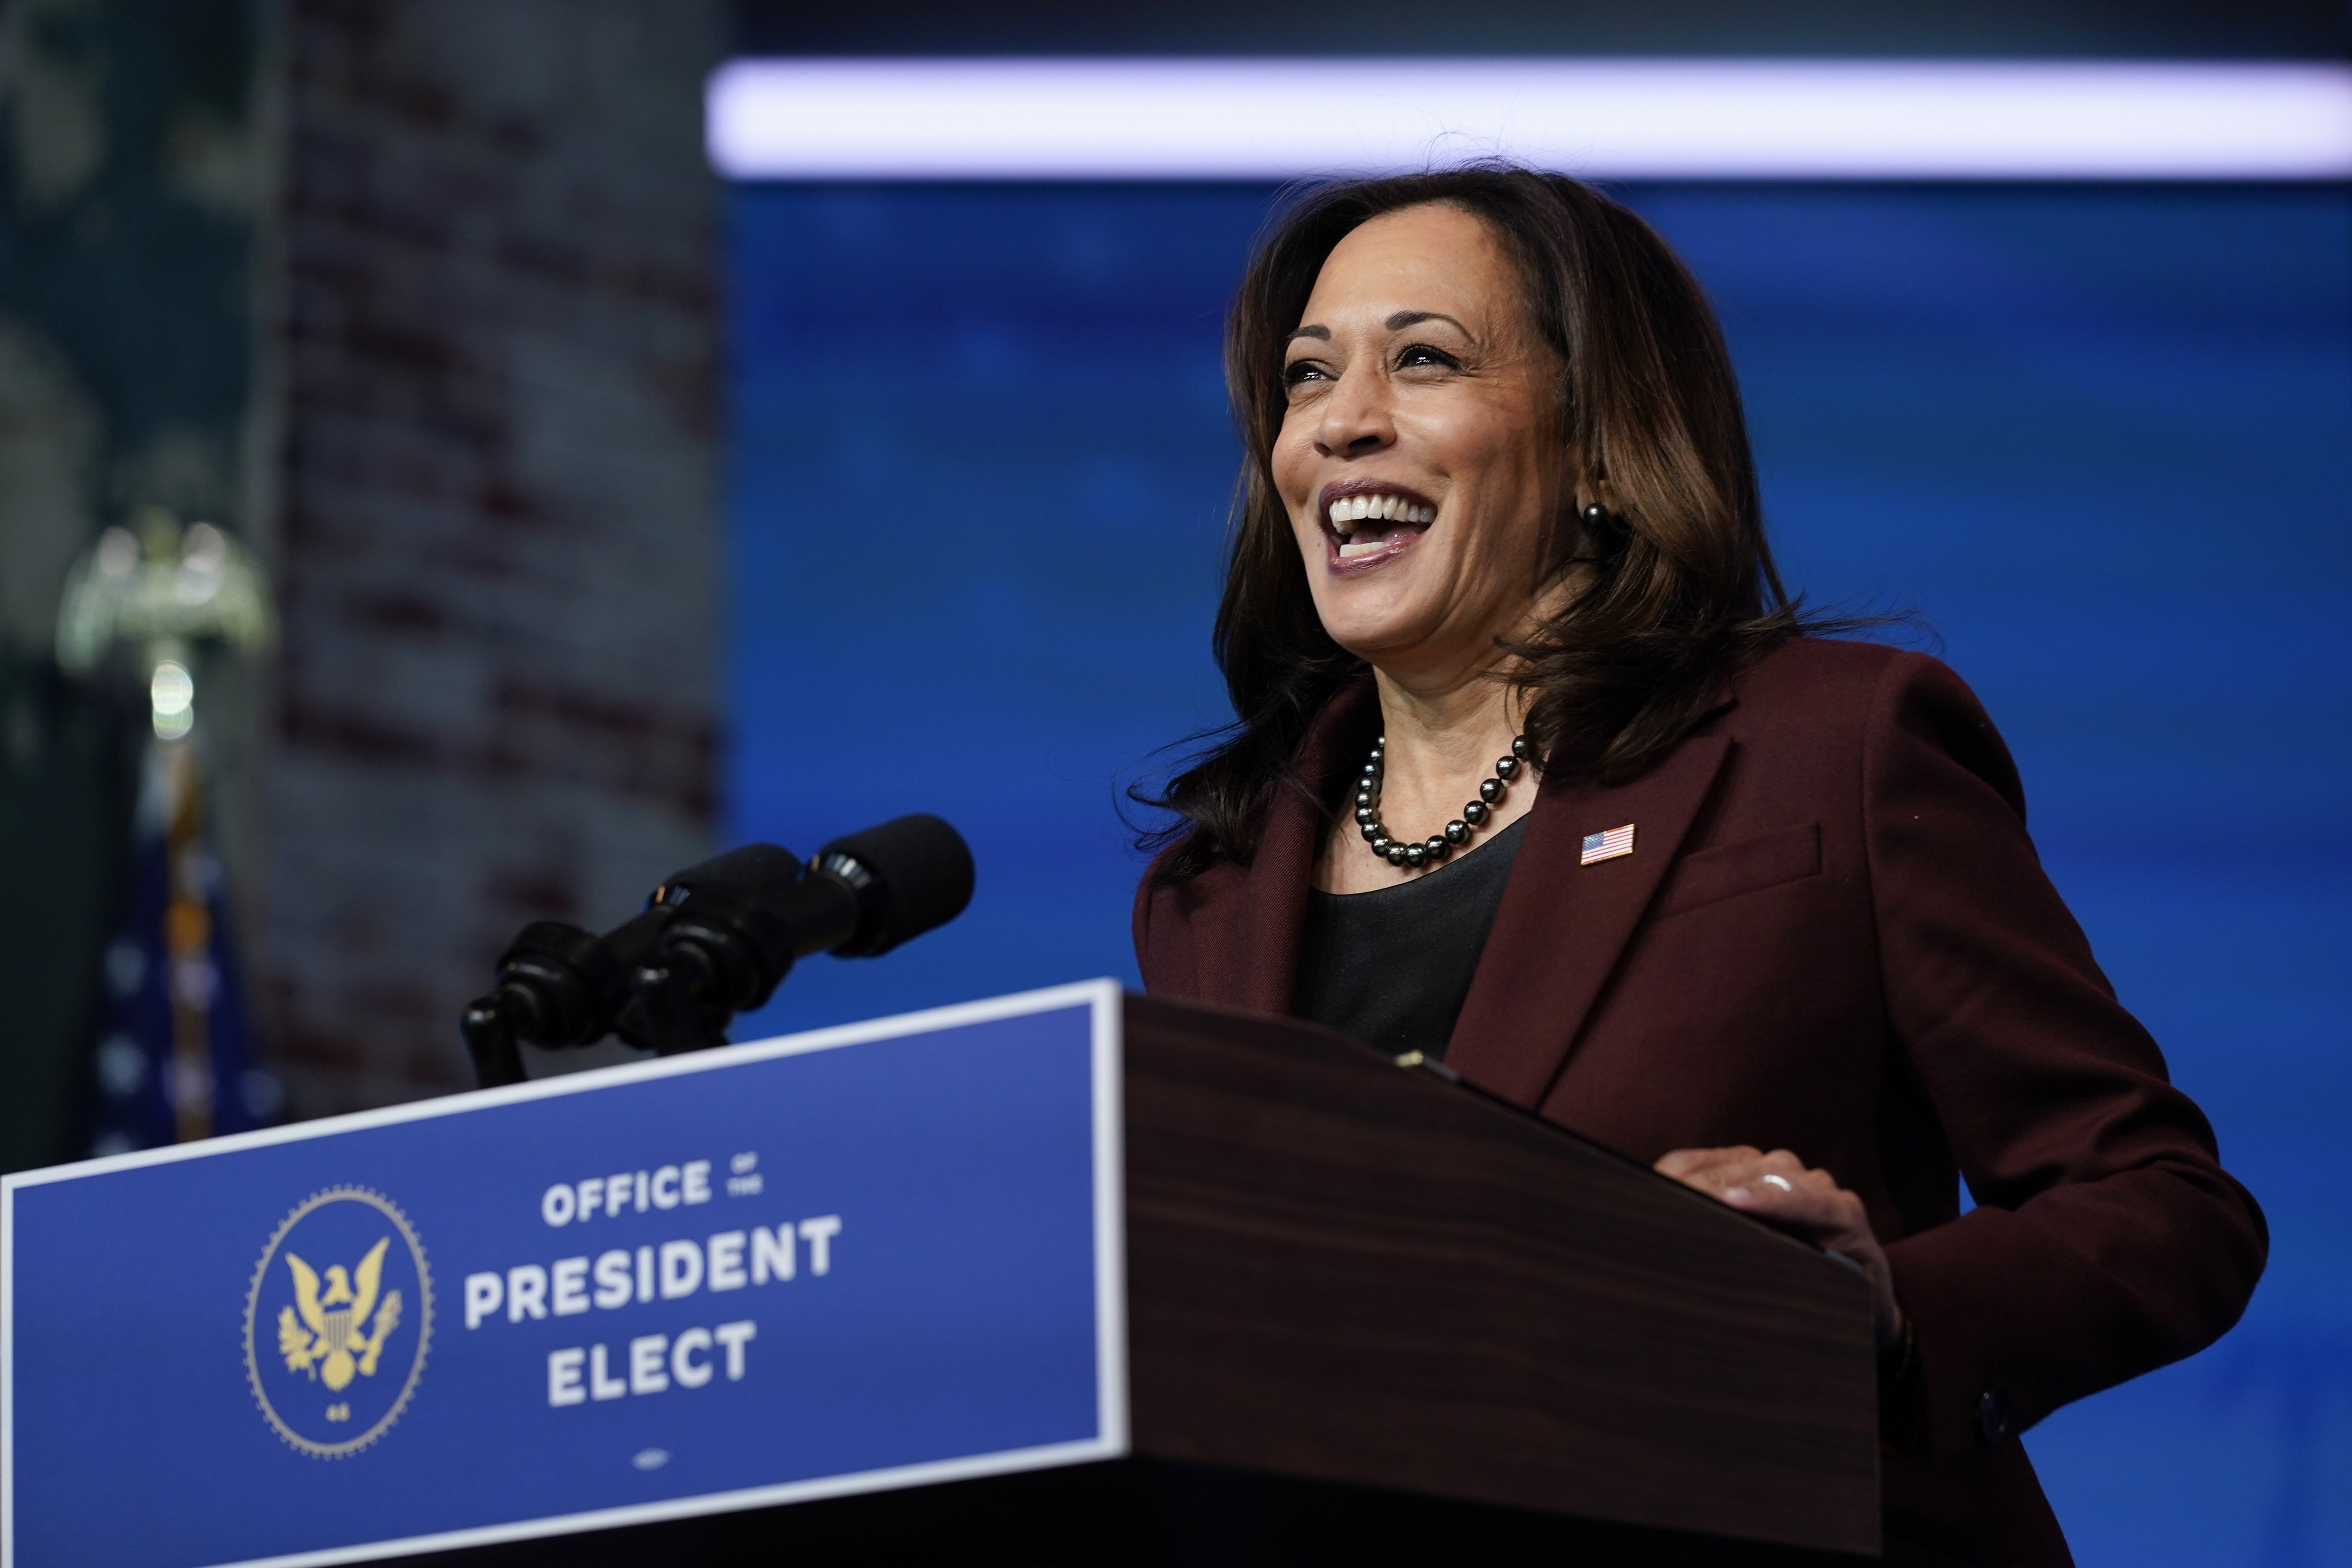 Vice President-elect Kamala Harris speaks as she and President-elect Joe Biden introduce their nominees and appointees to key national security and foreign policy posts at The Queen theater, in Wilmington, Del., on Nov. 24, 2020.